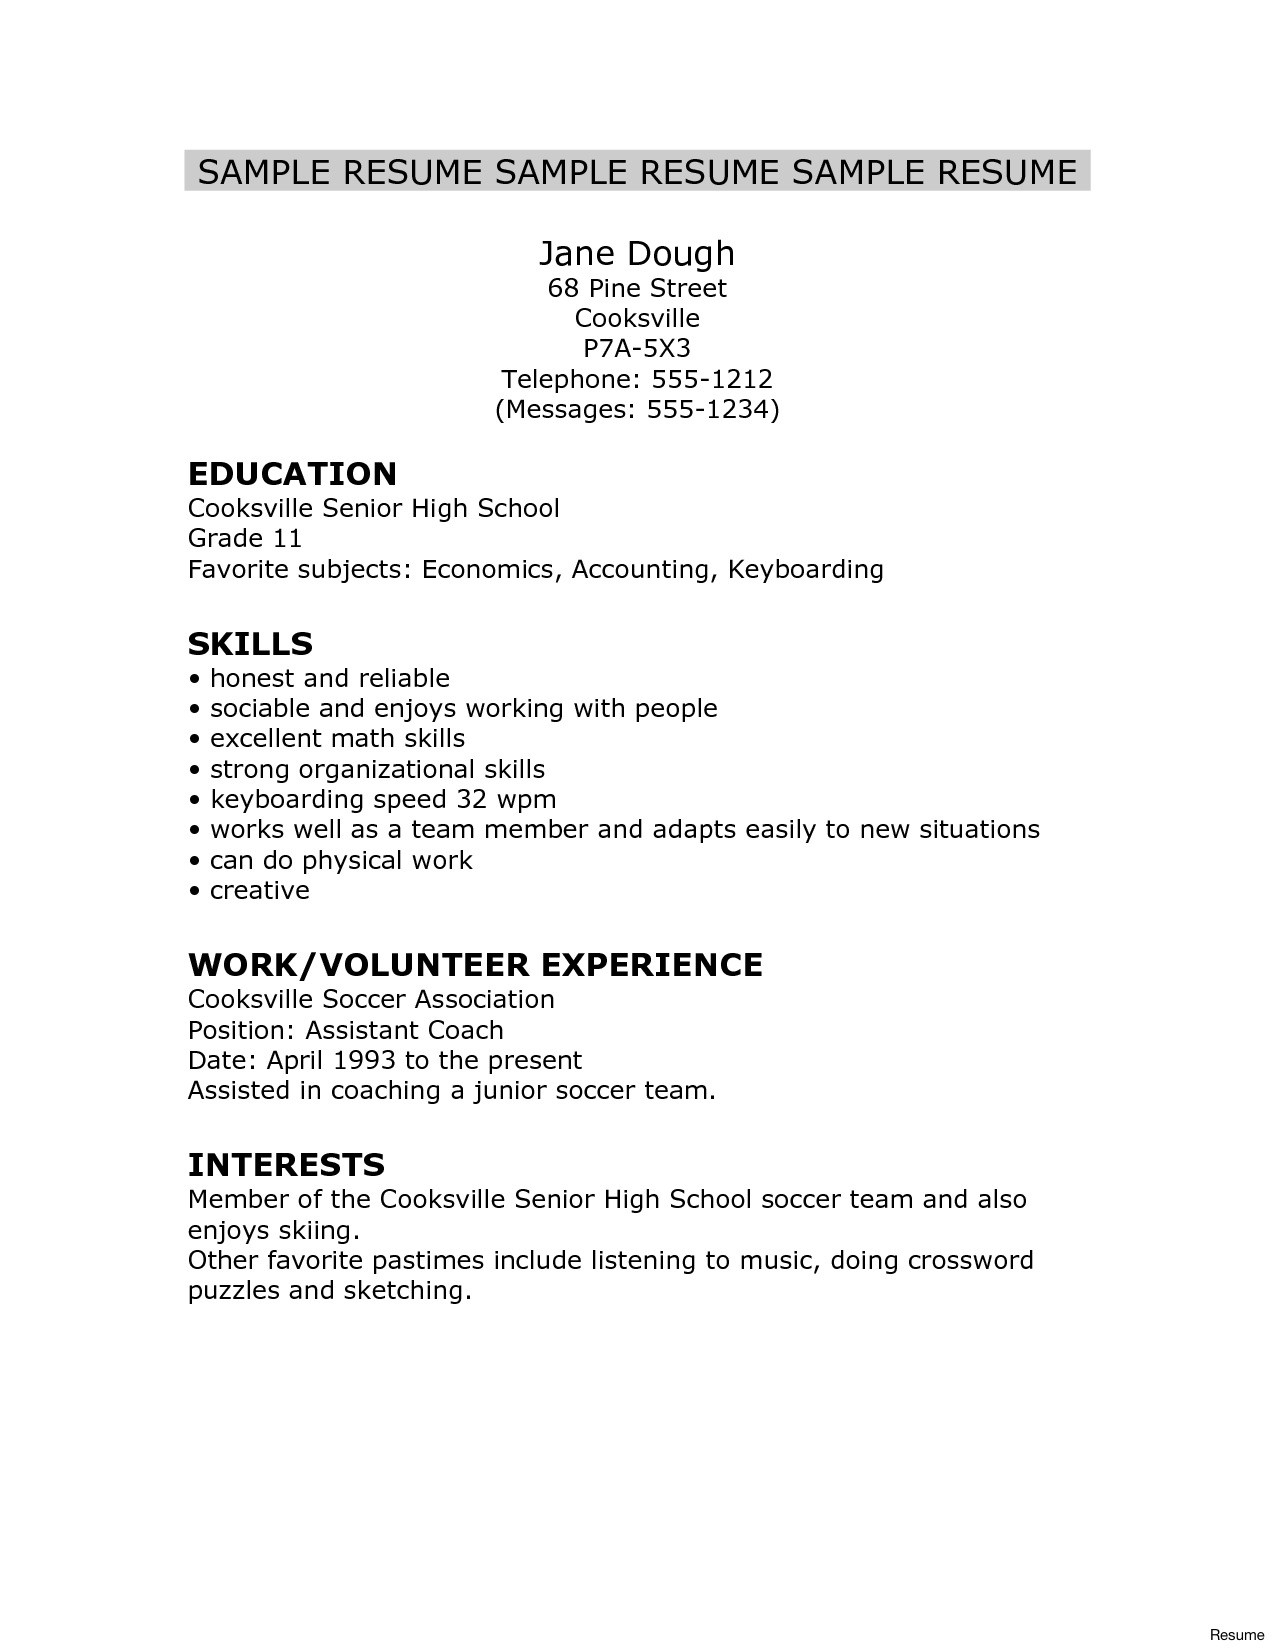 College Resume for High School Seniors - 16 College Resume Examples for High School Seniors